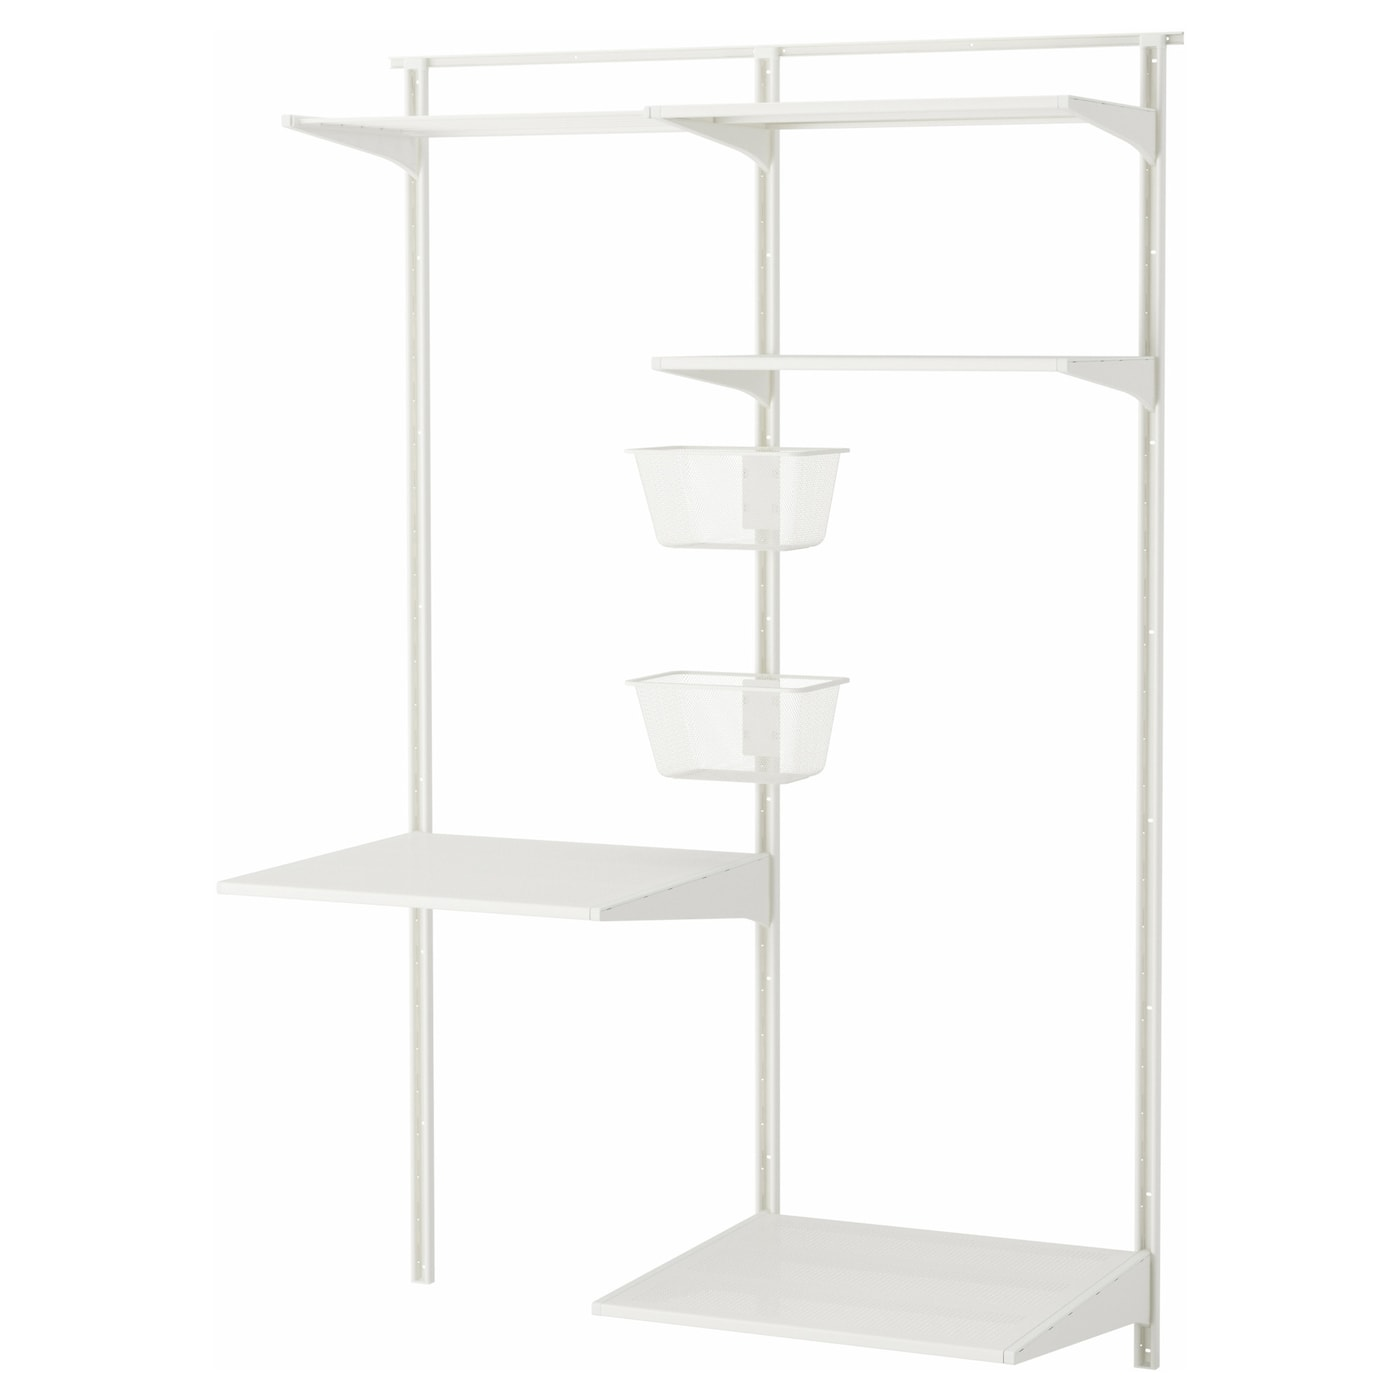 handling products storage adjustable material shelf rack corner